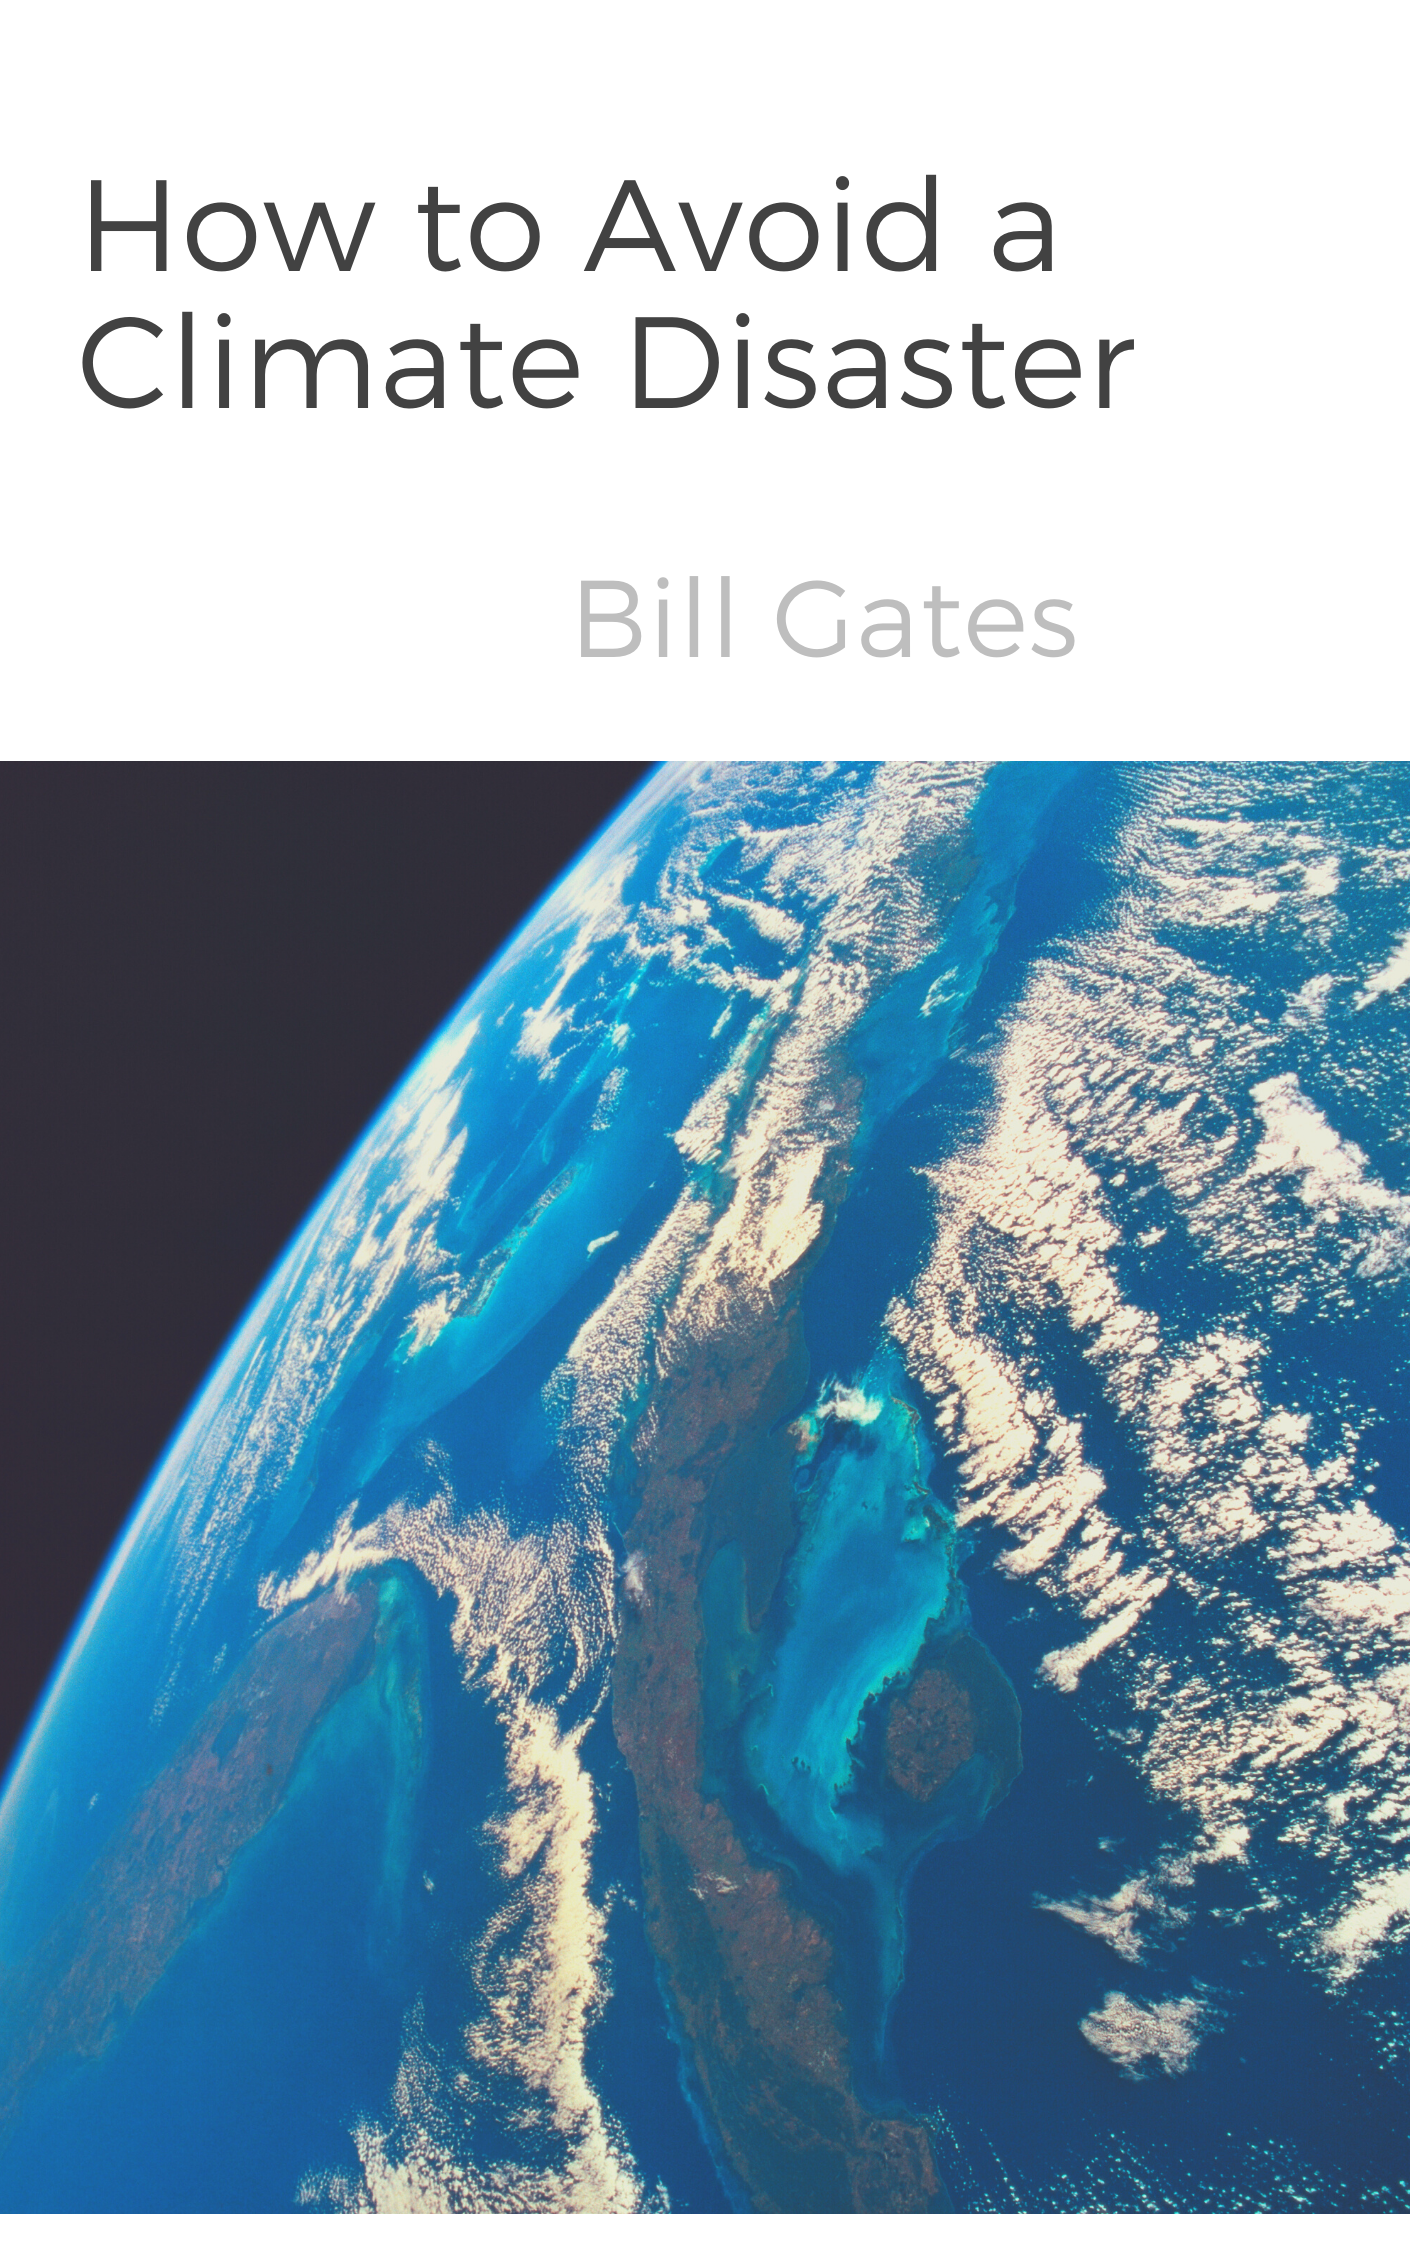 How to Avoid a Climate Disaster - Bill Gates book summary